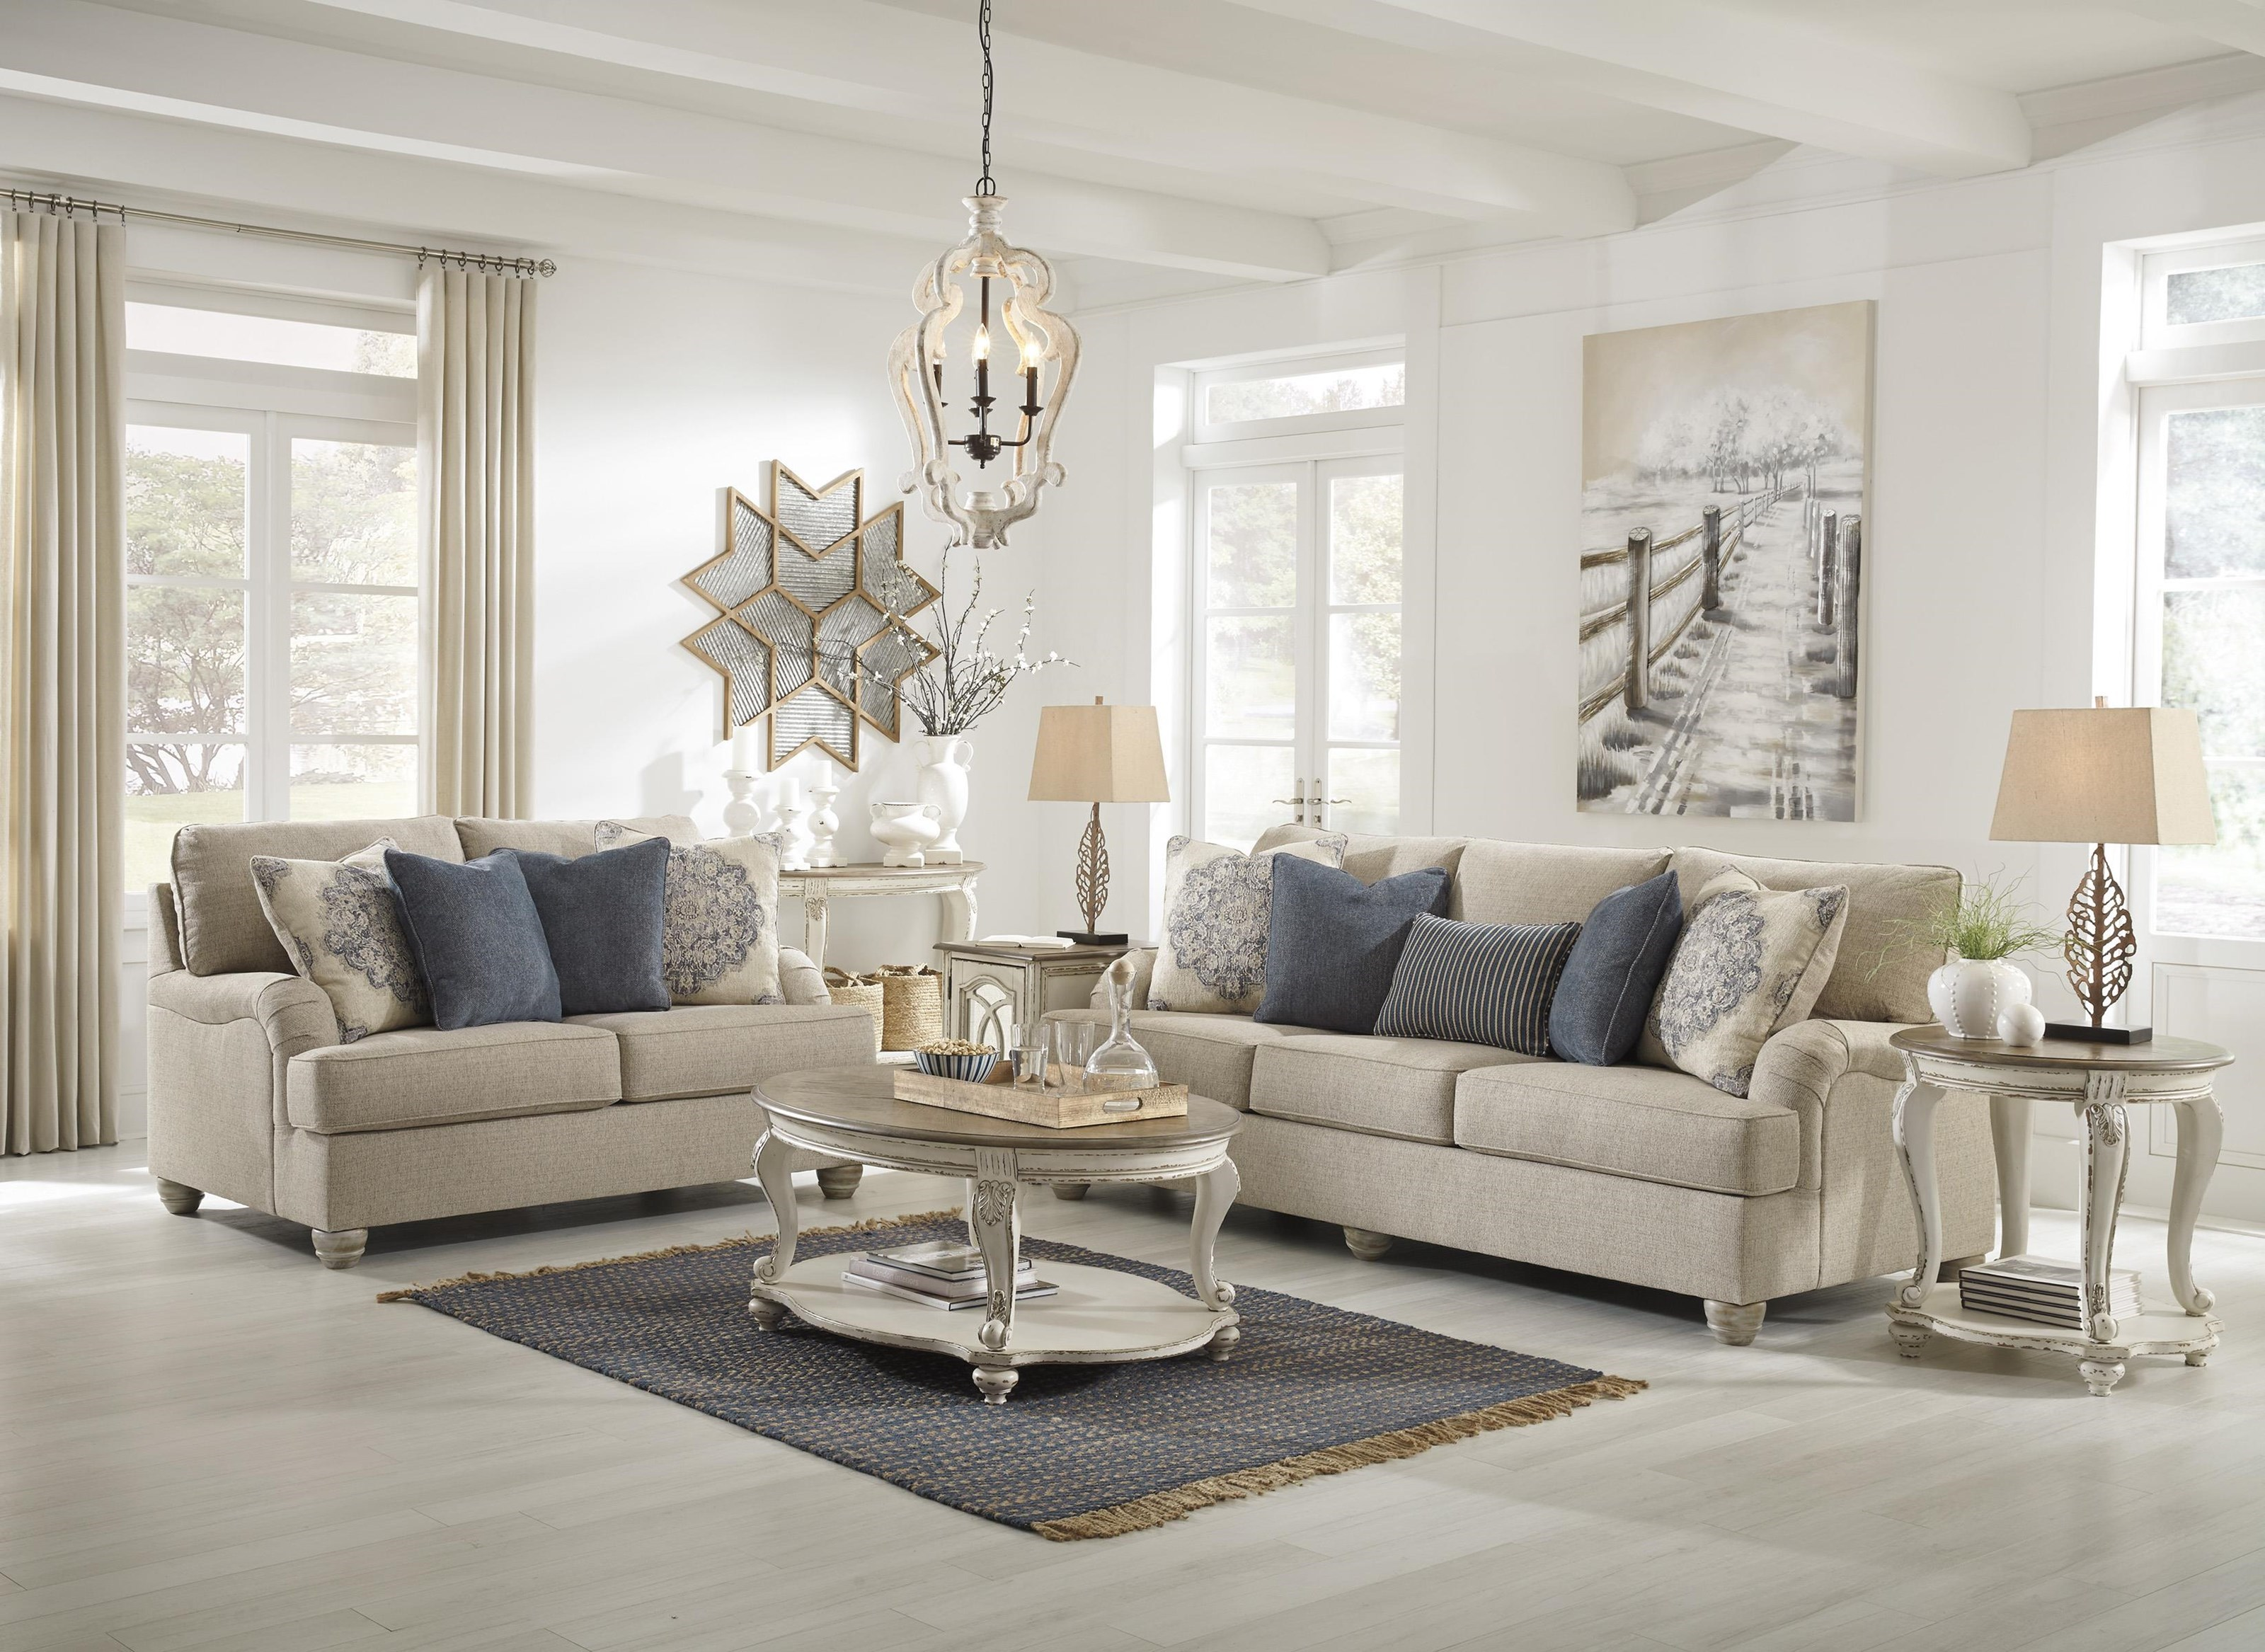 Picture of: Ashley Furniture Dandrea 9900438 35 Bisque Sofa And Loveseat Set Sam Levitz Outlet Stationary Living Room Groups